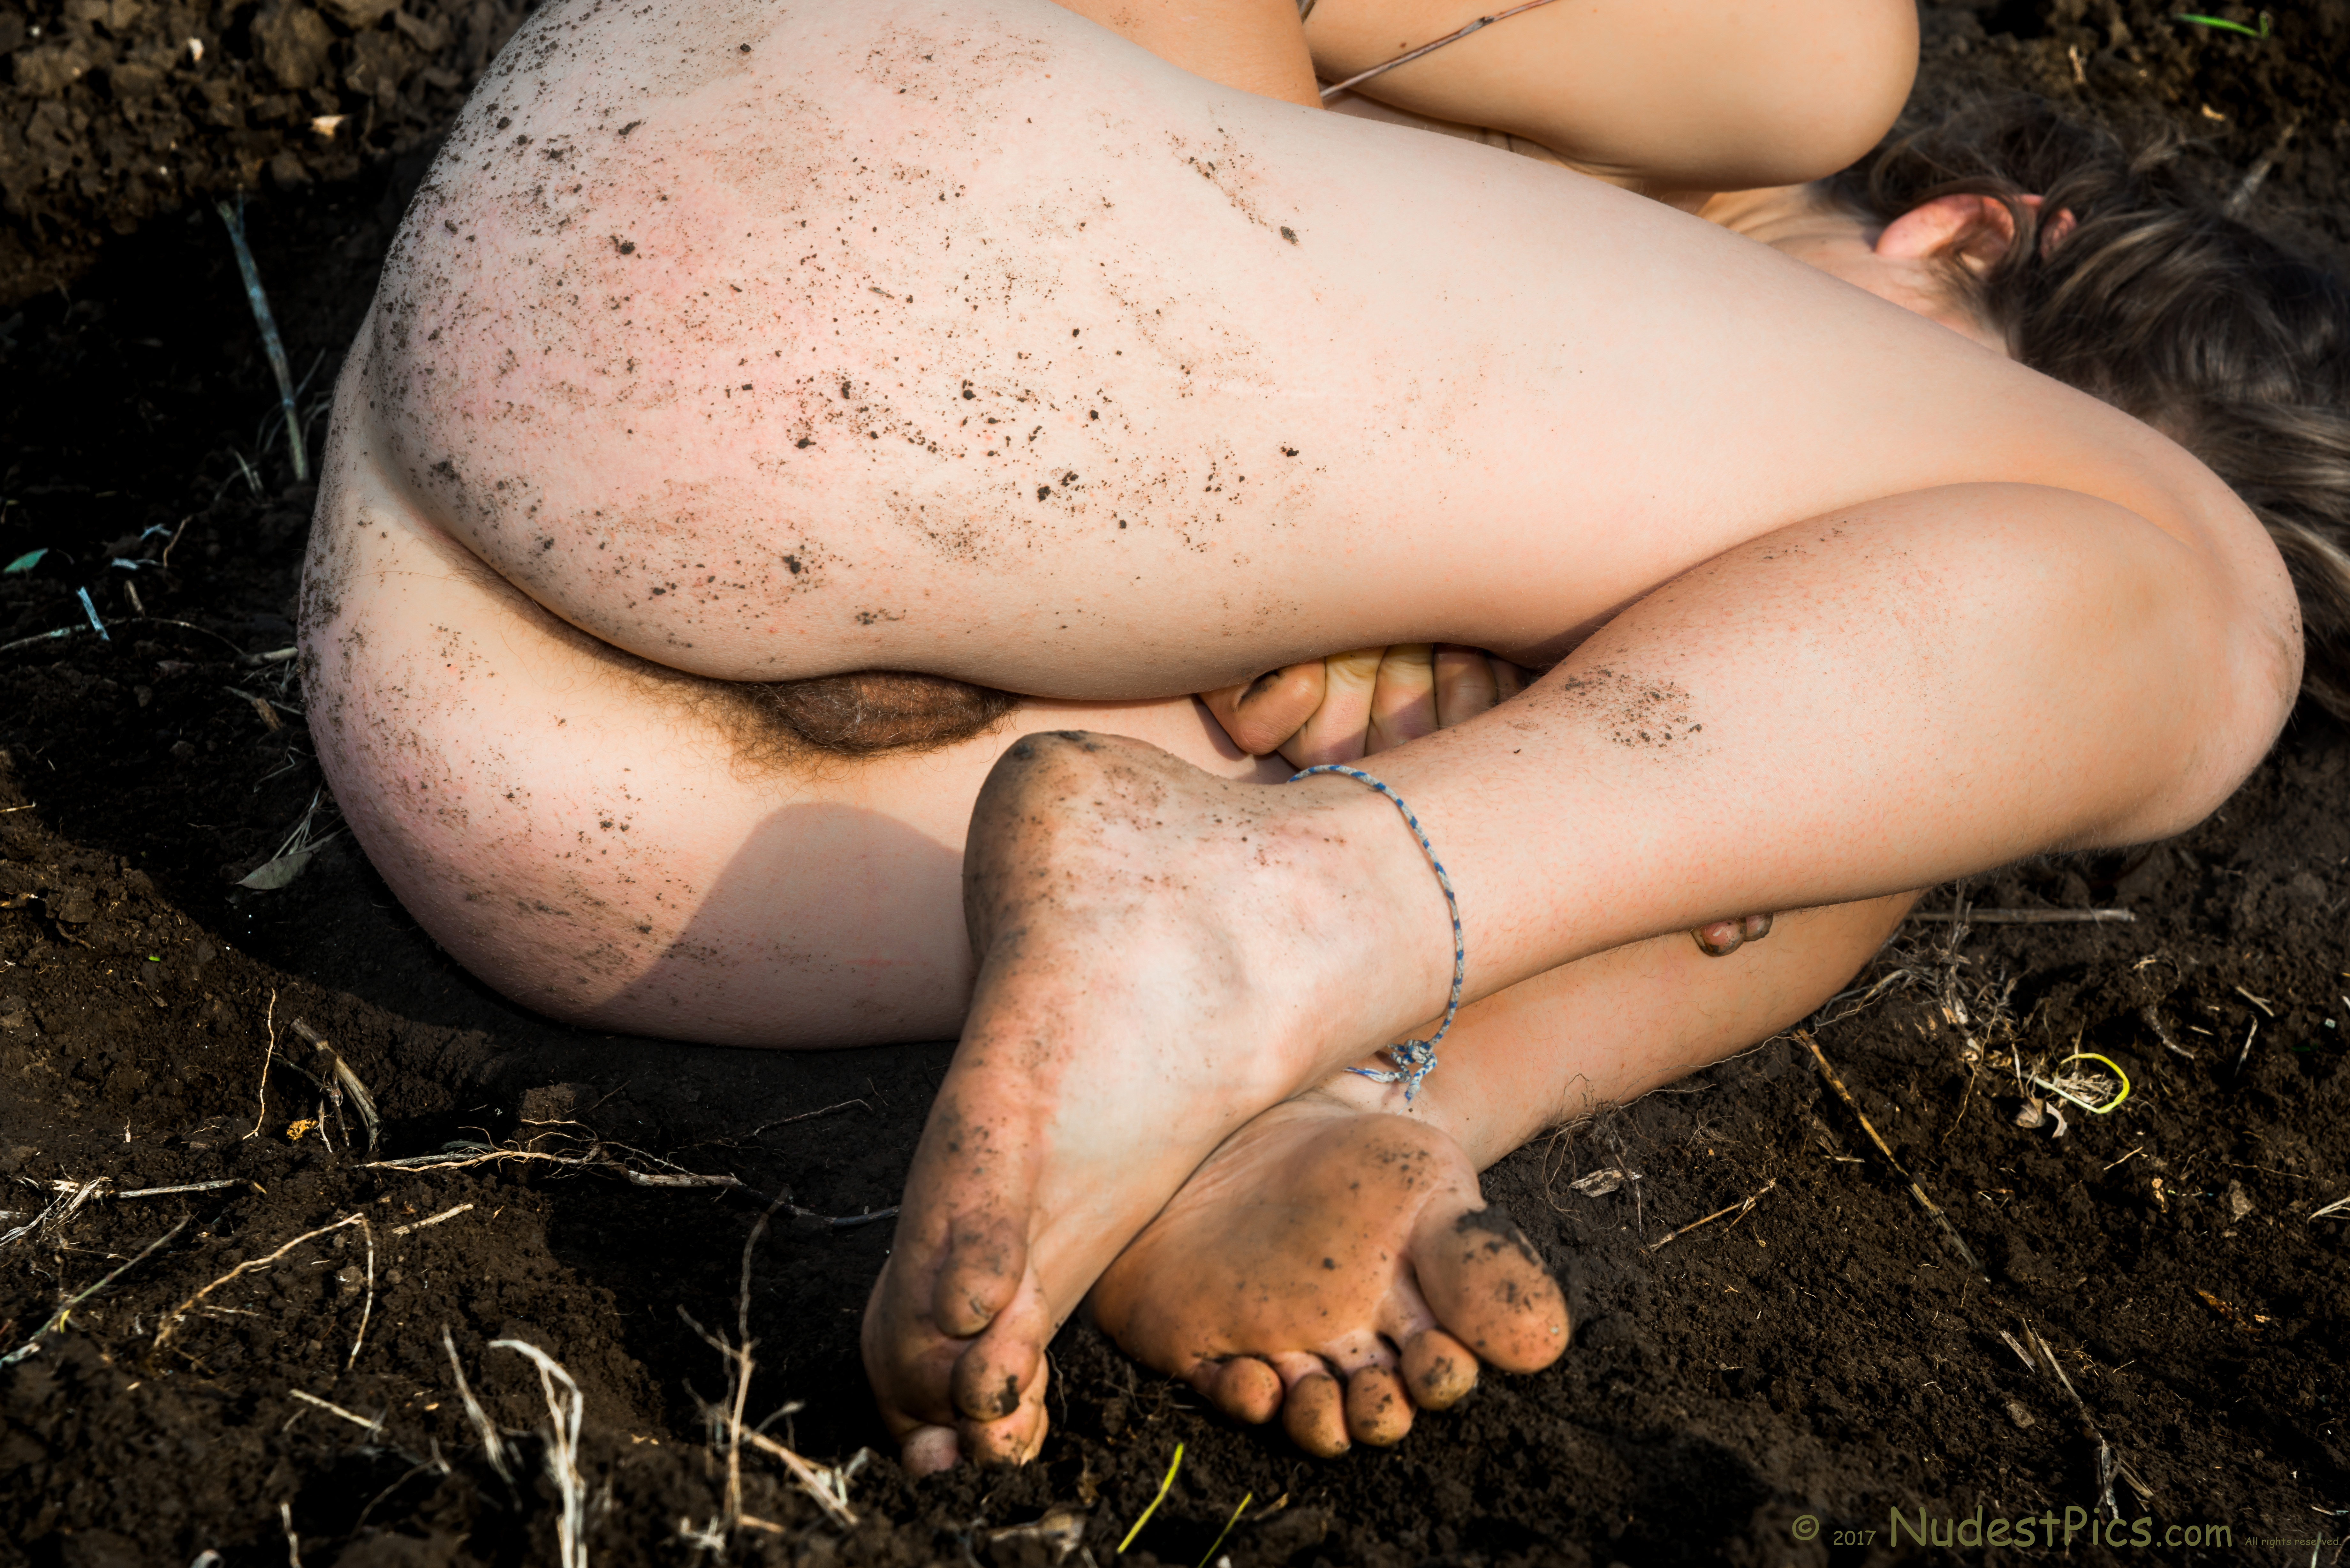 Natural Pubes Girl Squatting on the Soil HD